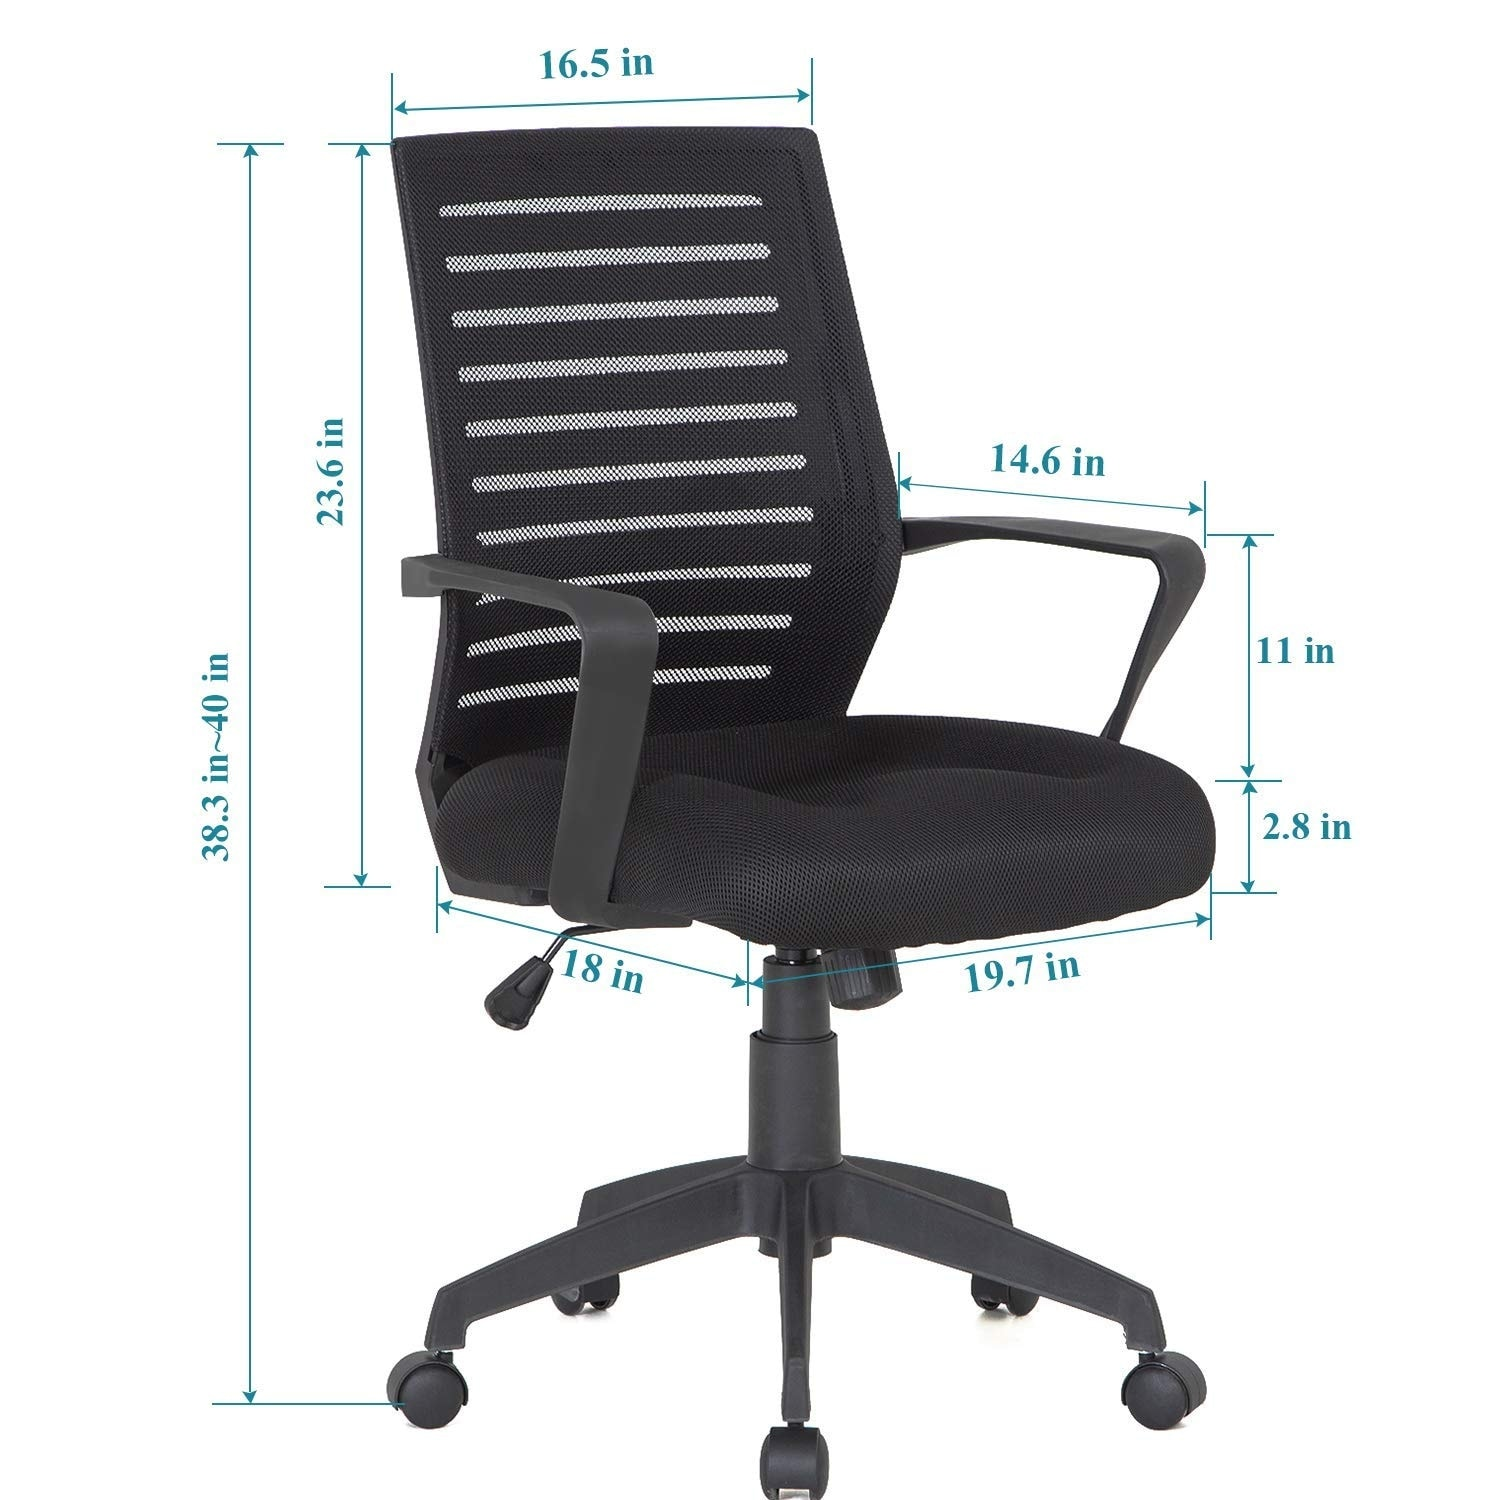 Shop Office Chair Mesh Surface Cushion Adjustable Swivel Mesh Desk Chairs On Sale Overstock 12605503 Mesh Cushion